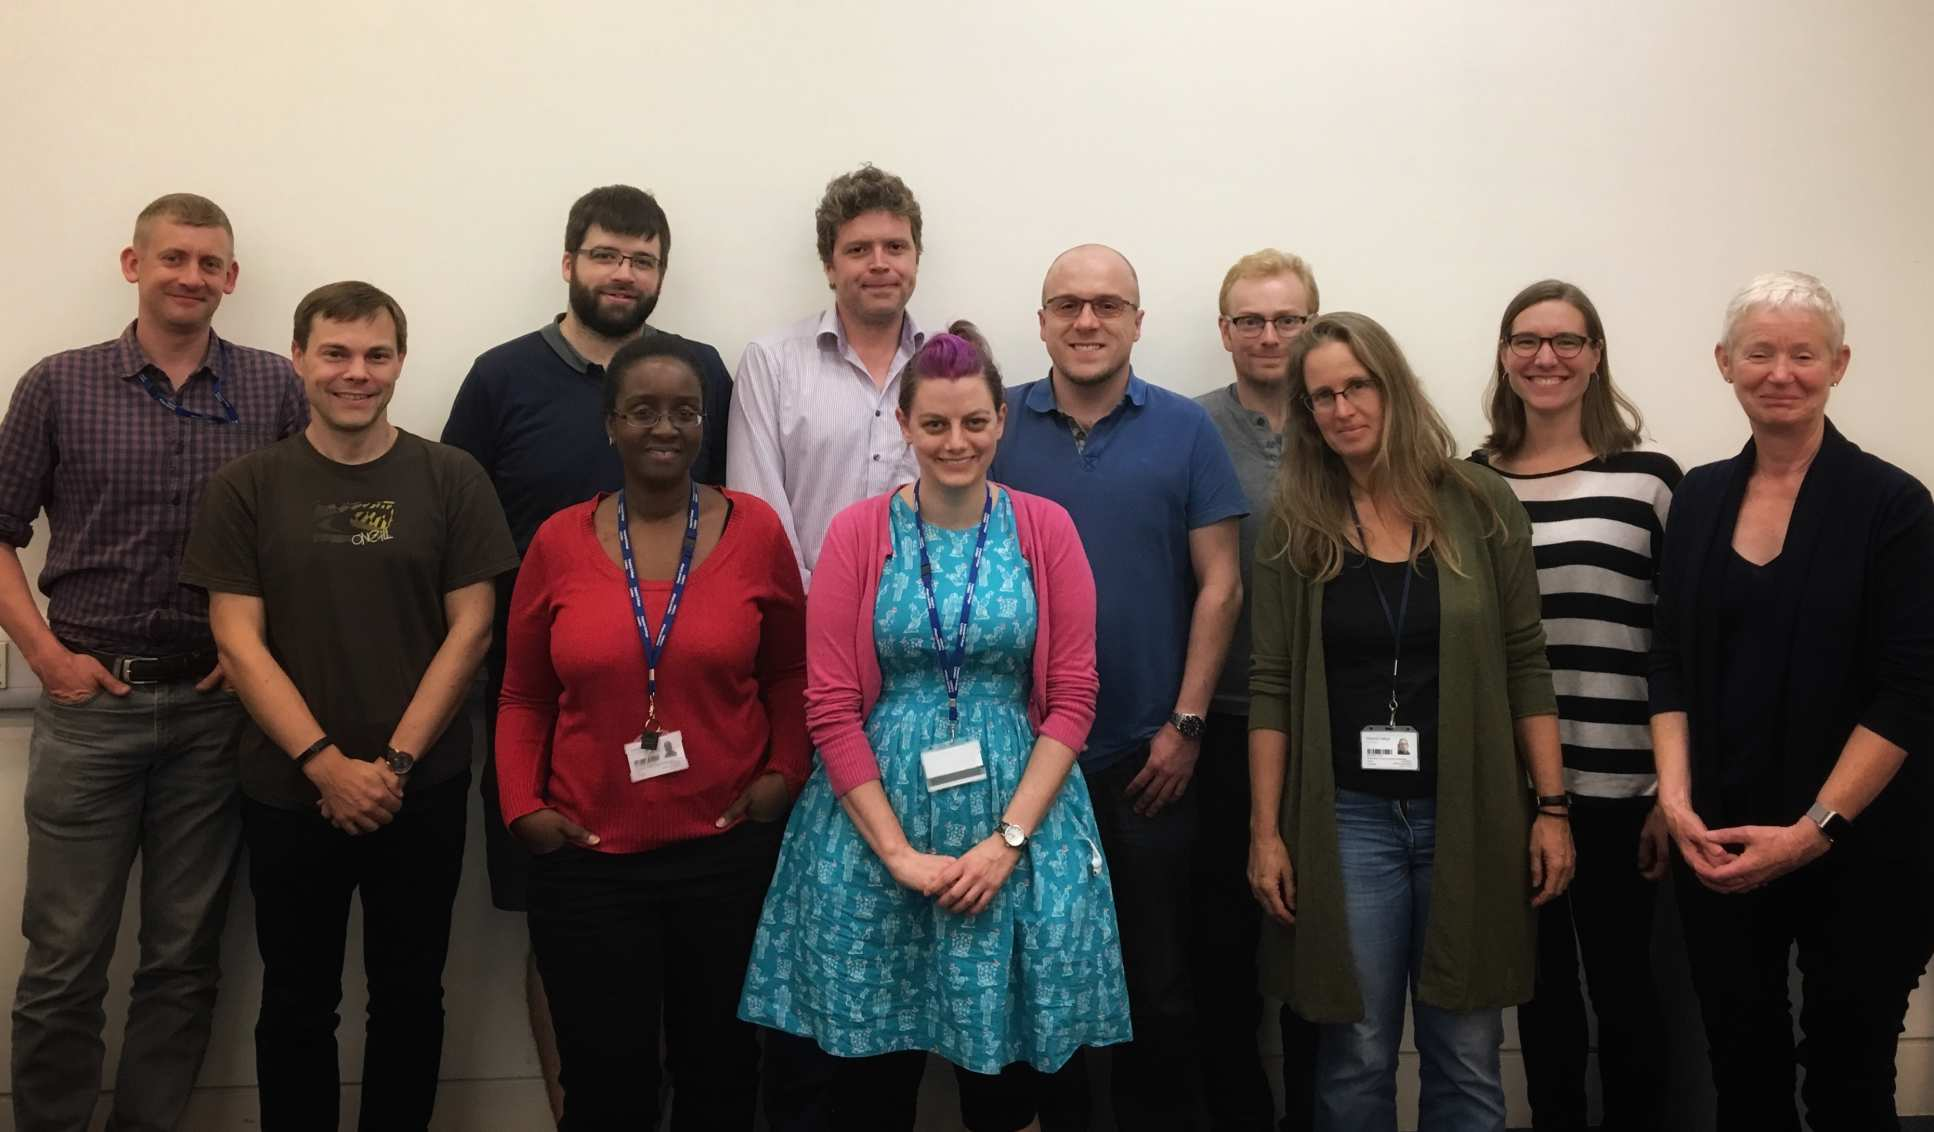 Earth Science and Engineering Staff who completed Mental Health Training pose together for a photo